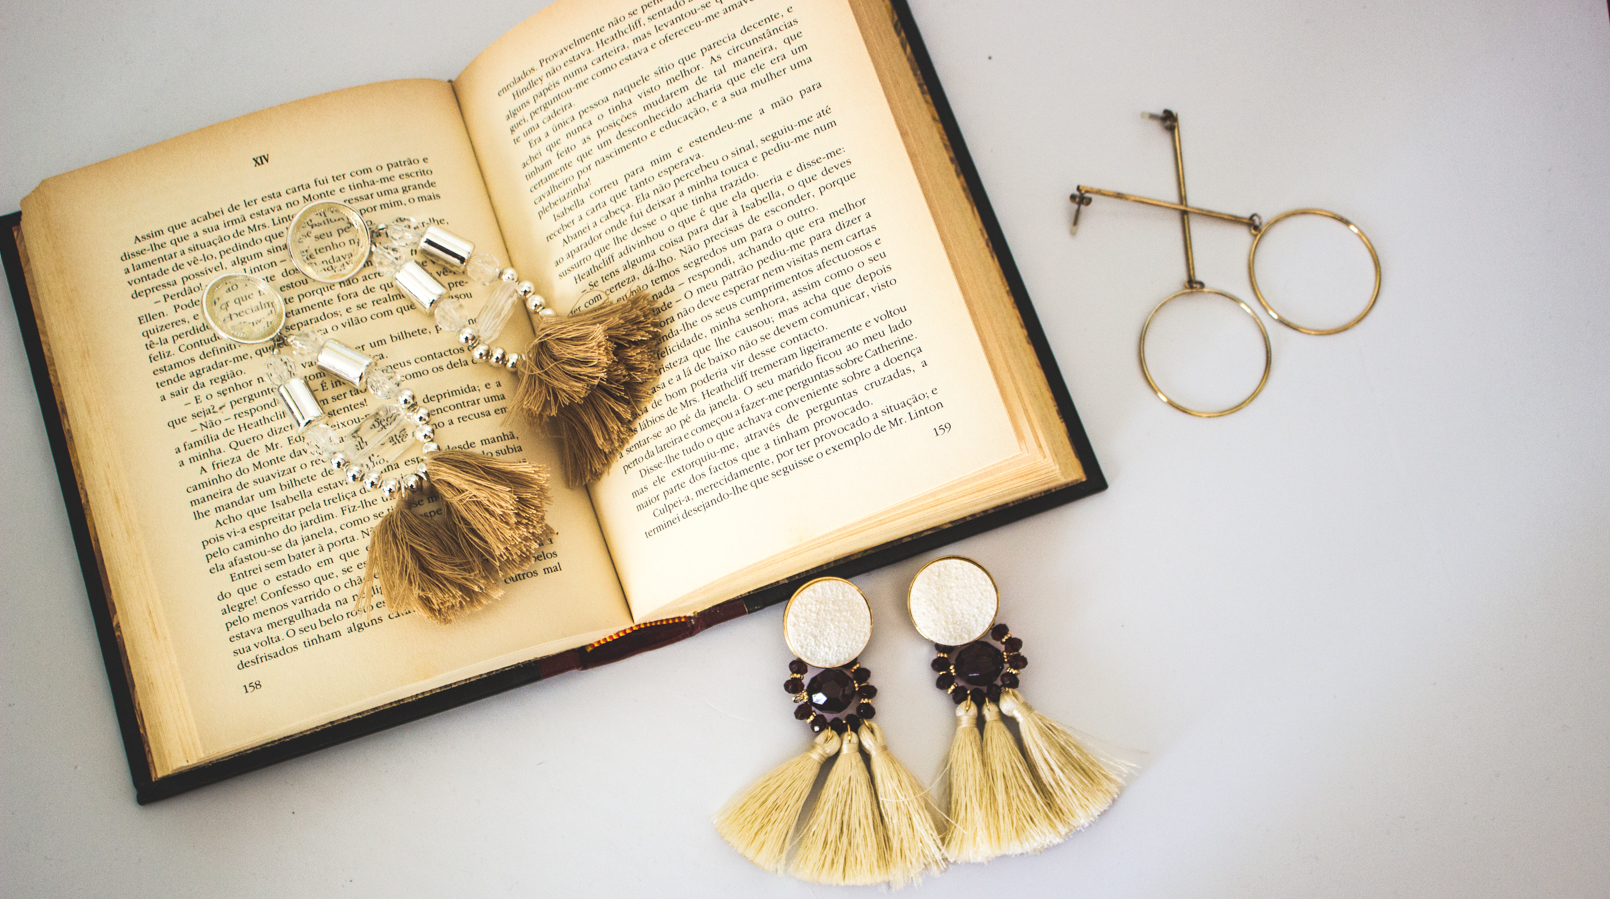 Le Fashionaire On trend: Statement Earrings earrings pale pink long fringes pvc hm gold hoop long hm old book lion pearl bold gold vintage mango 5335F EN